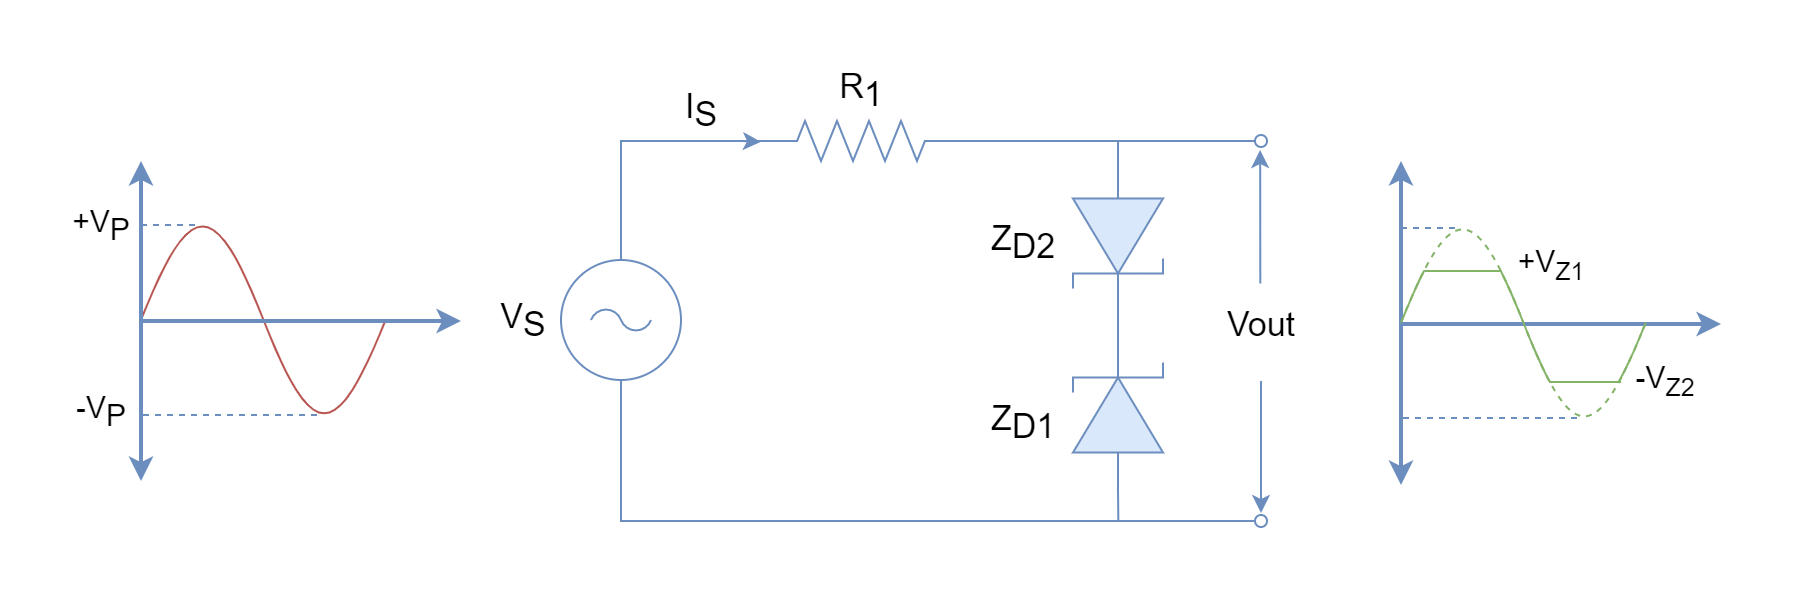 Positive and negative cycles Zener diode clipping circuit